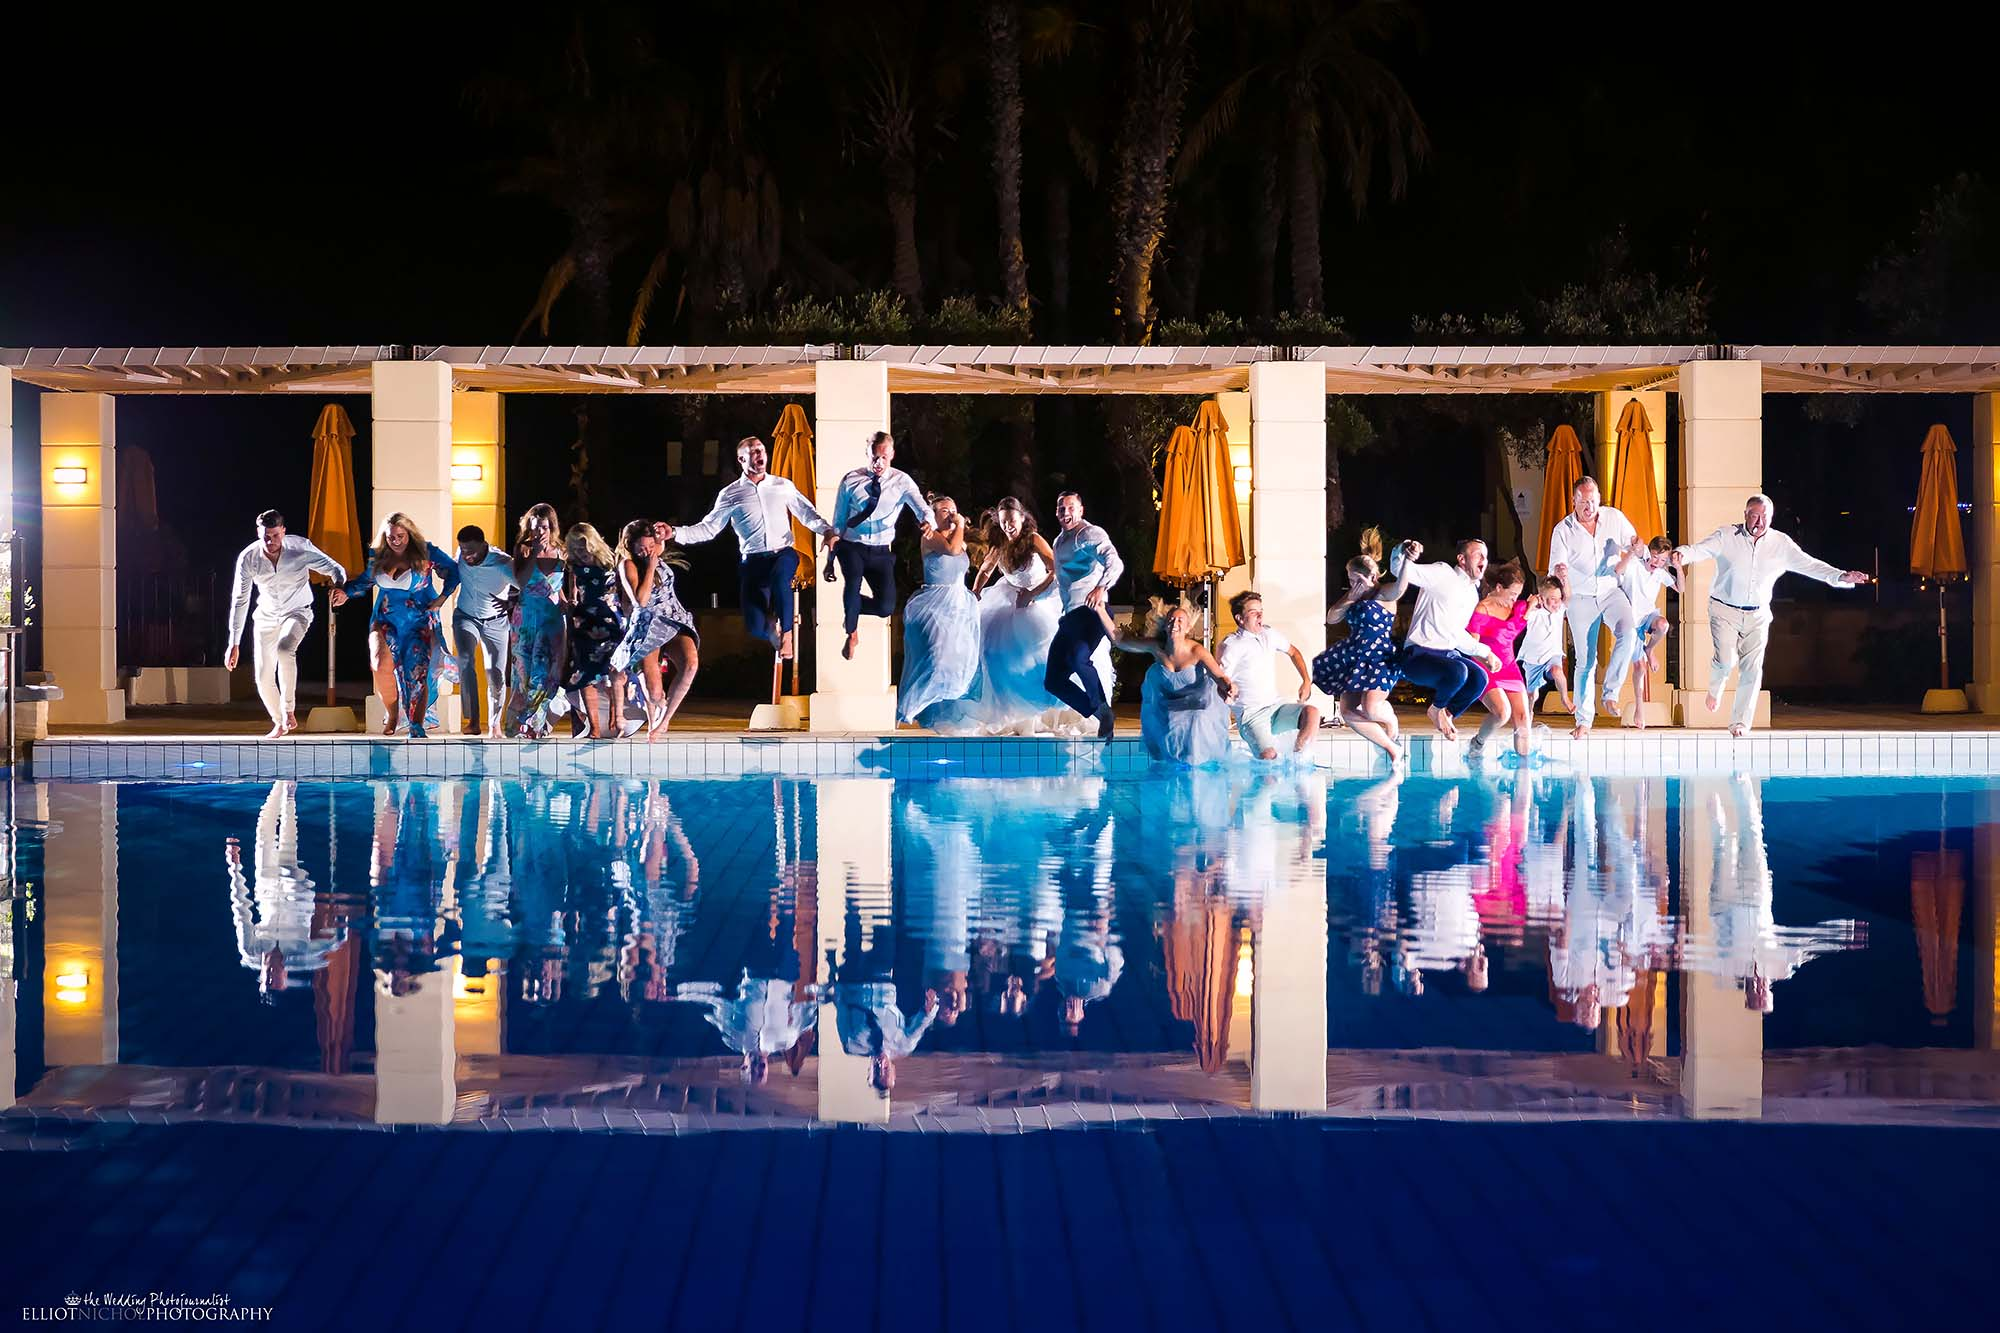 destination wedding party all jump into a swimming pool fully clothed.